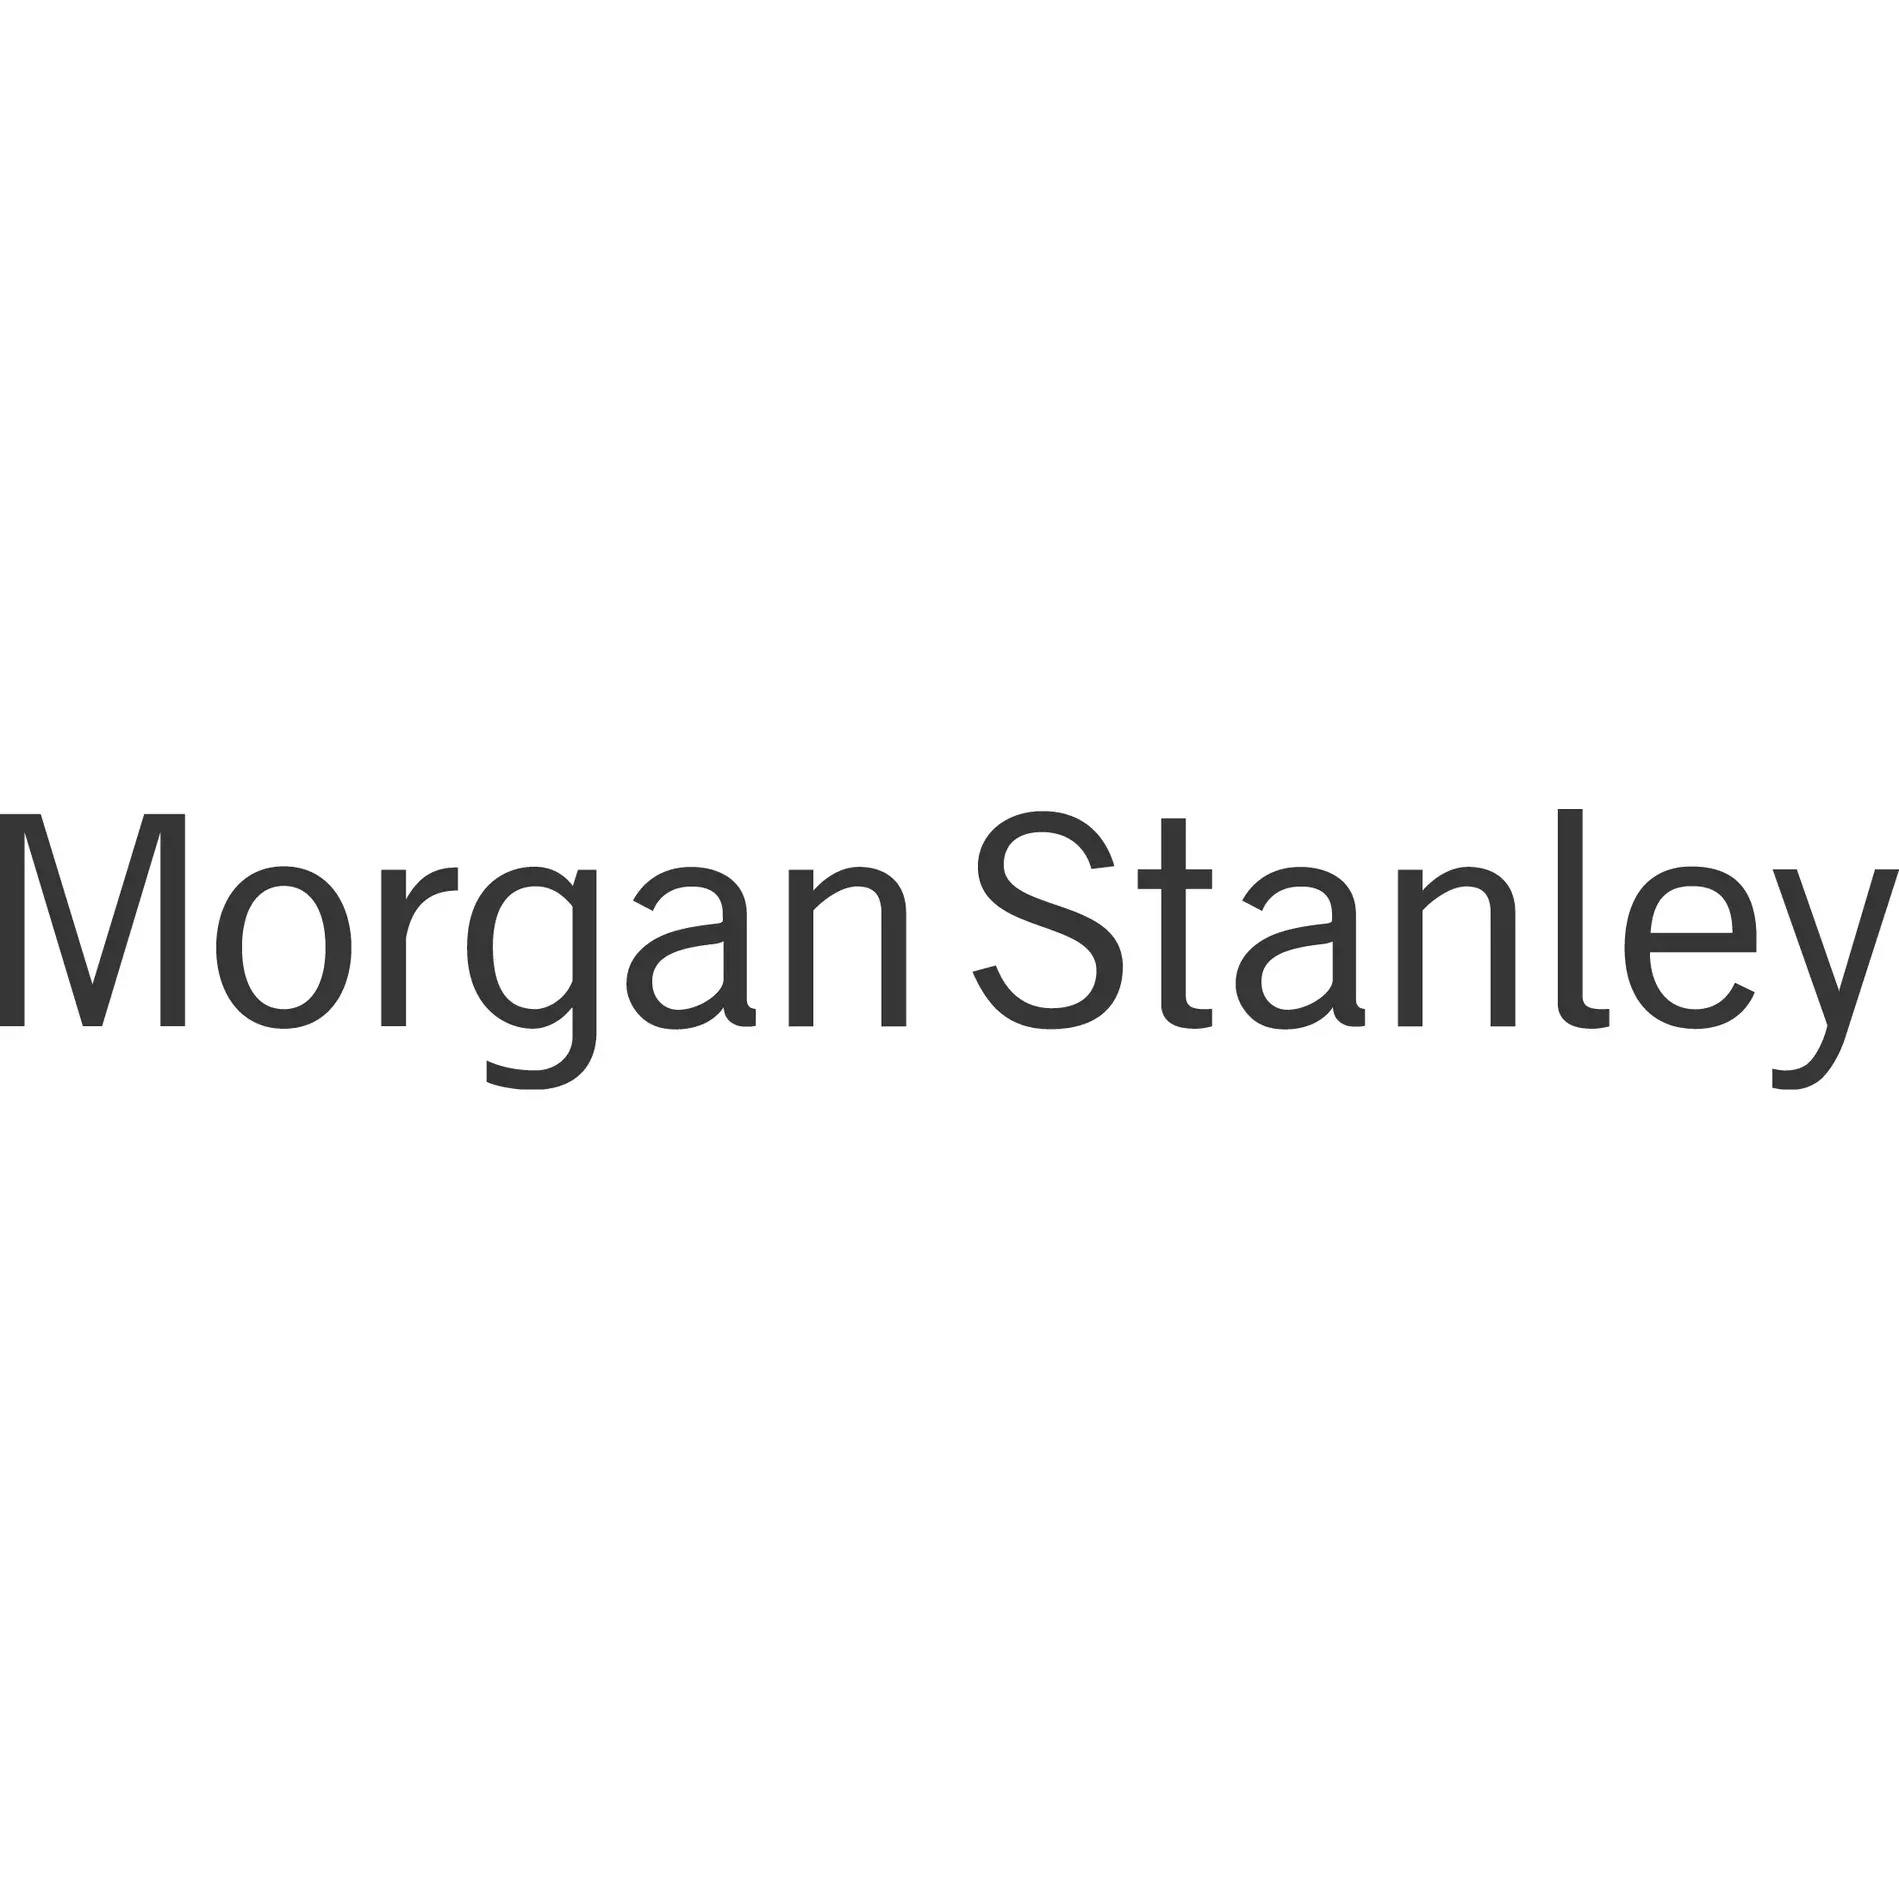 William Billy Lang - Morgan Stanley